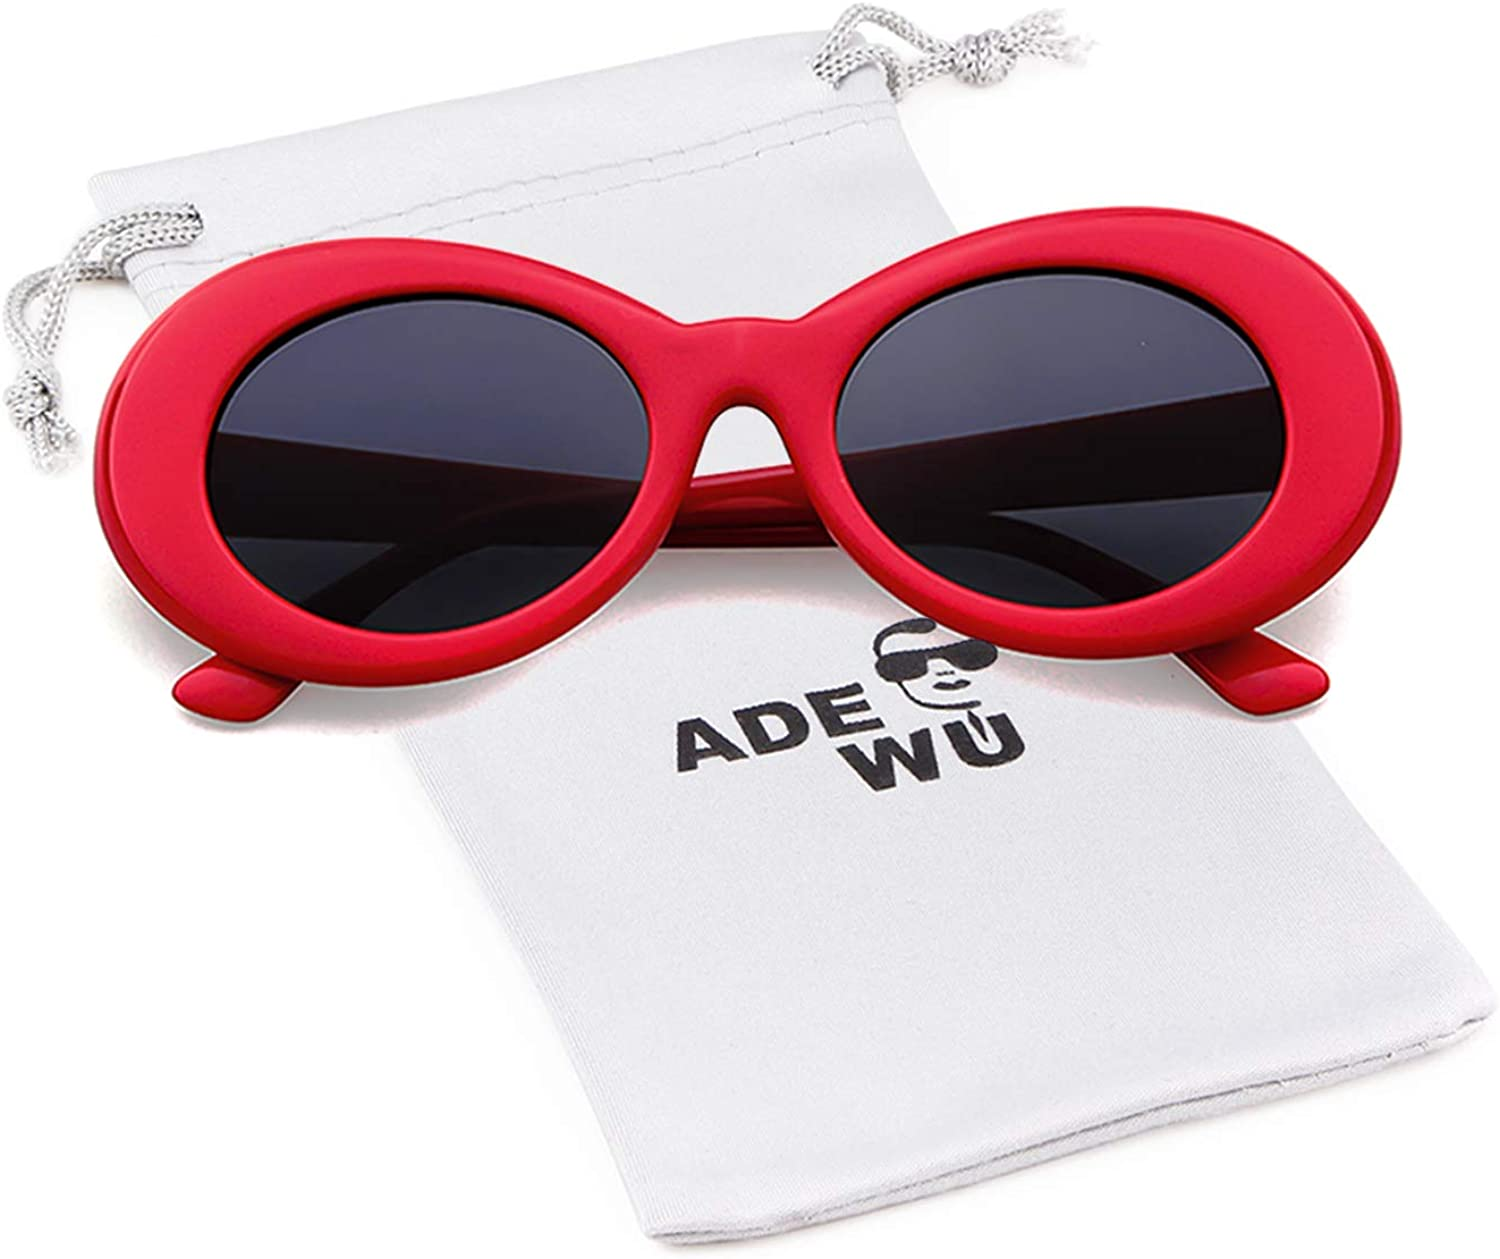 ADEWU Clout Goggles, Lunettes de Soleil Ovales Red